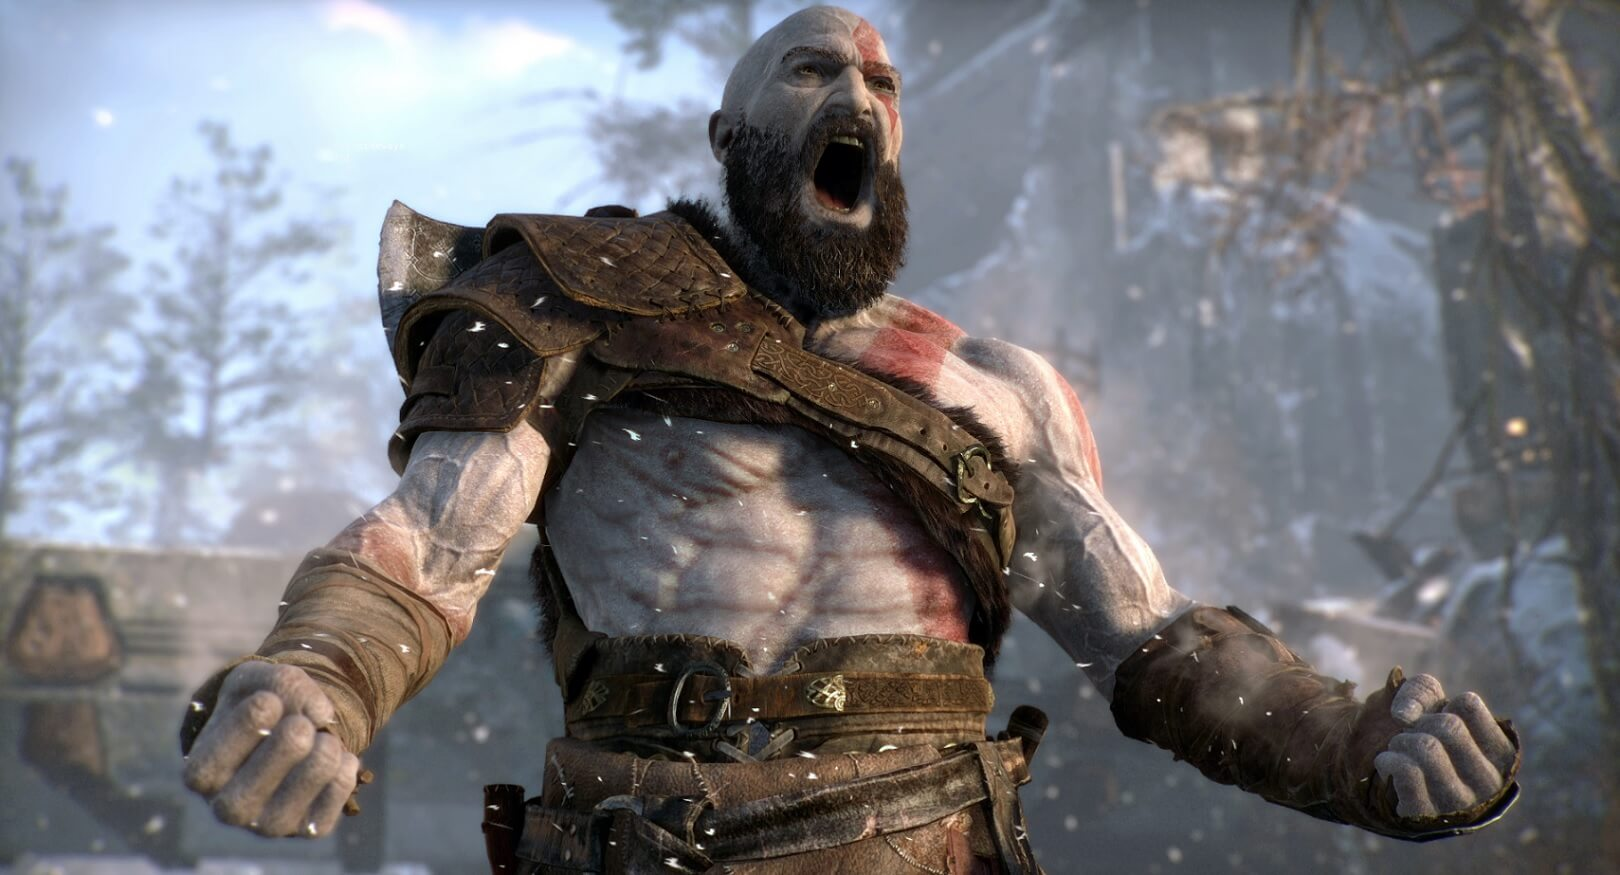 kratos from god of war shouting for game of the year on sony playstation